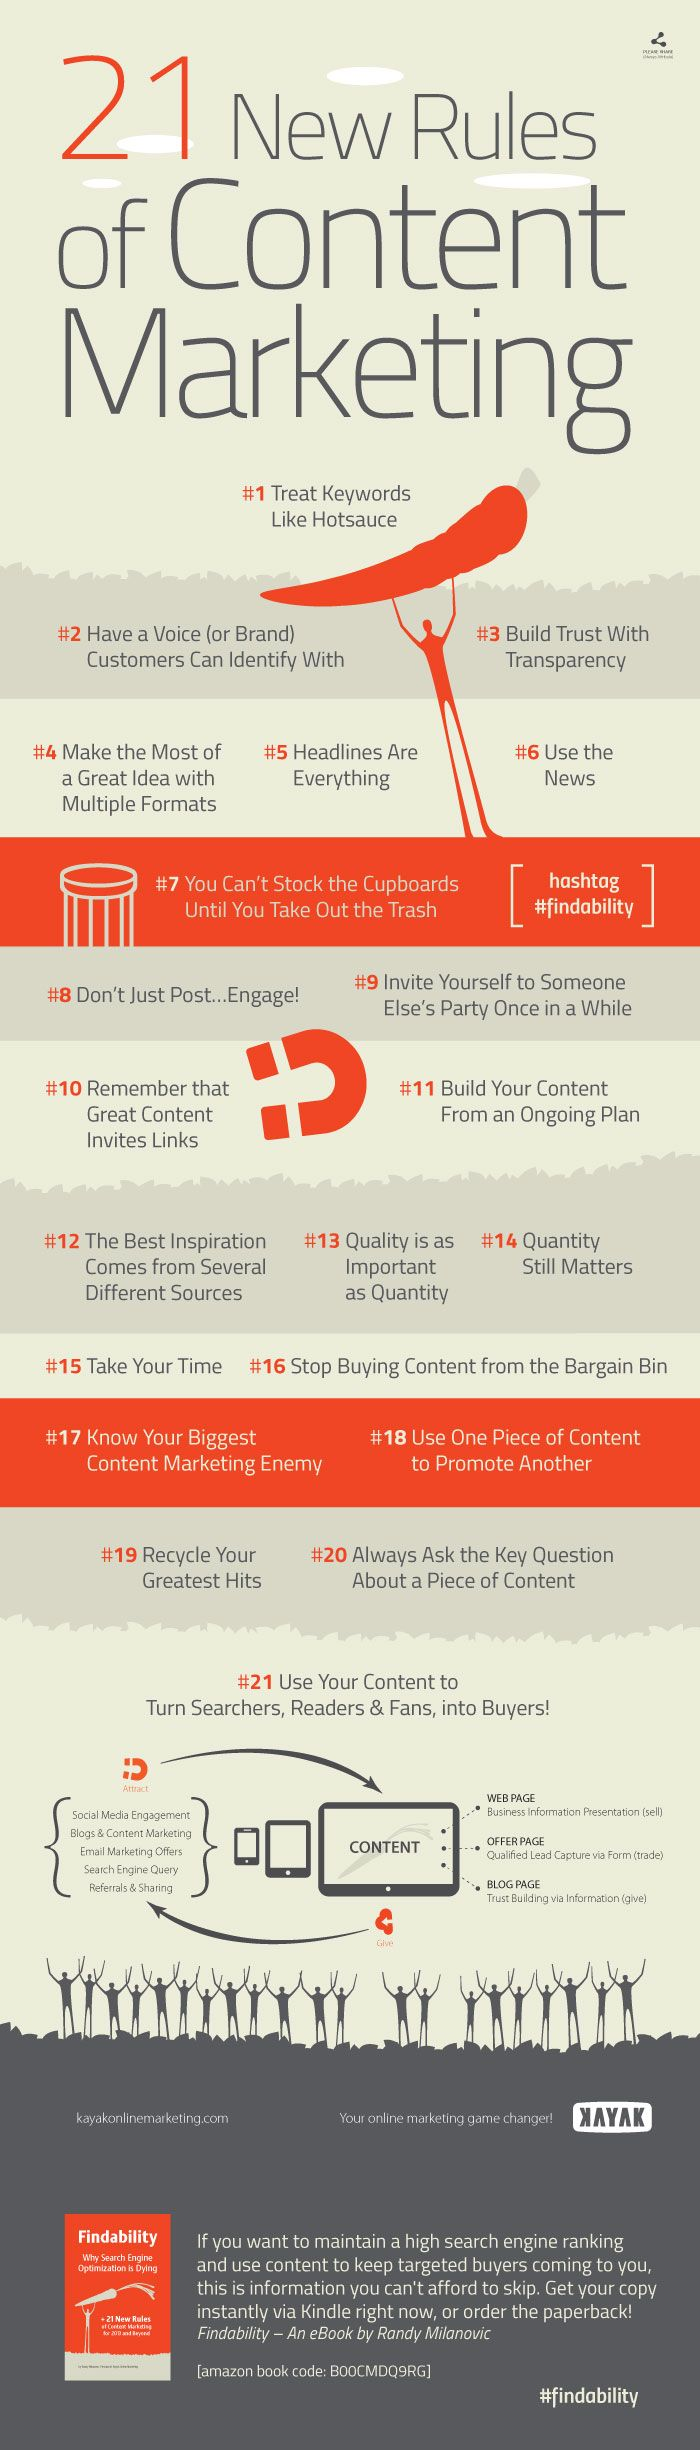 The 21 New Rules of Content Marketing [Infographic] - Cool Infographics in B2B Marketing and Technology